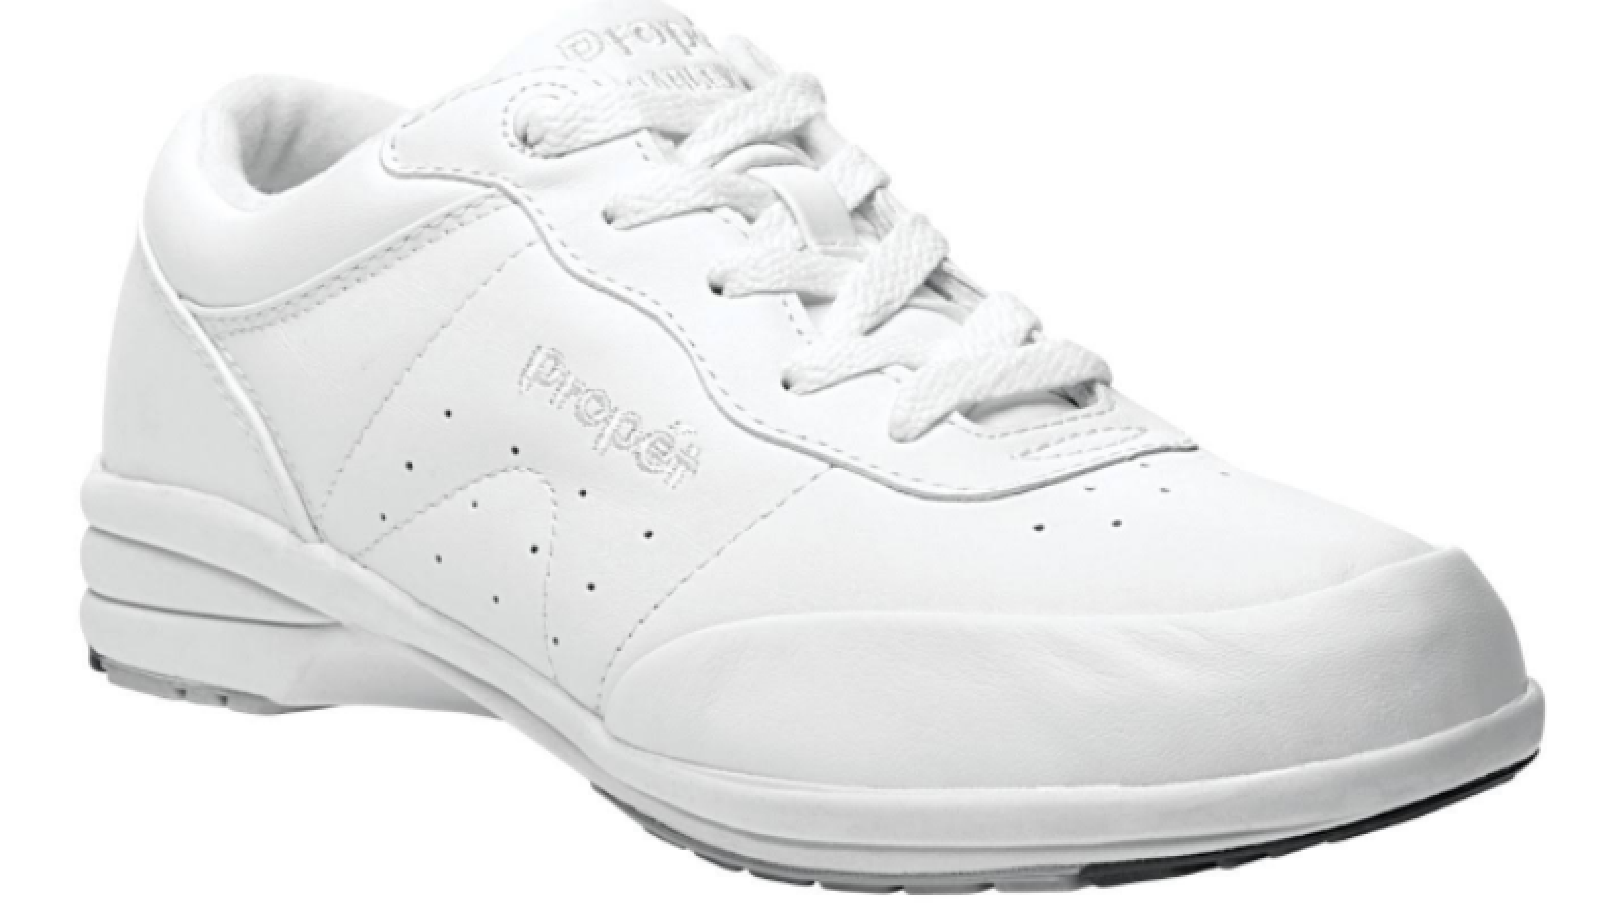 Propet Washable Walker Women's Leather Walking Shoes Sz 8.5 4A (S) EXTRA NARROW